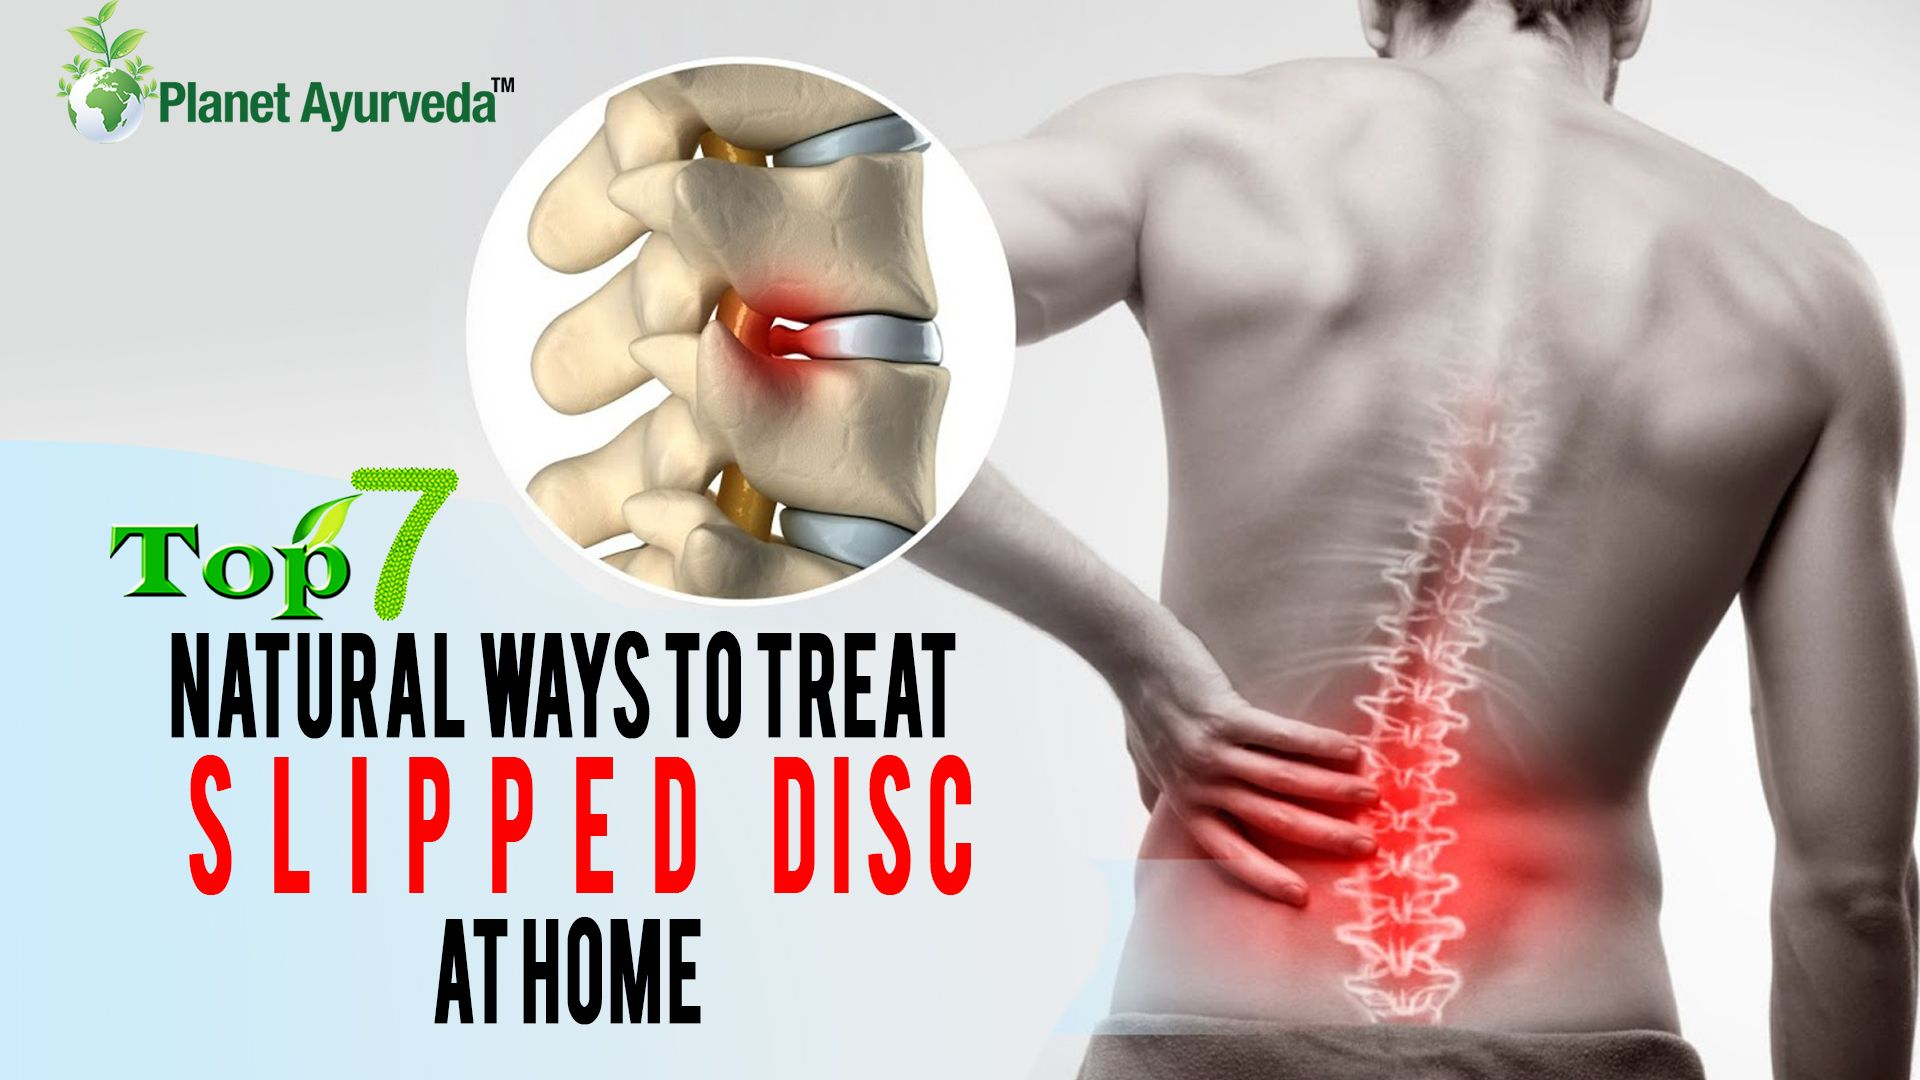 Top 7 Natural Ways to Treat Slipped Disc at Home ...